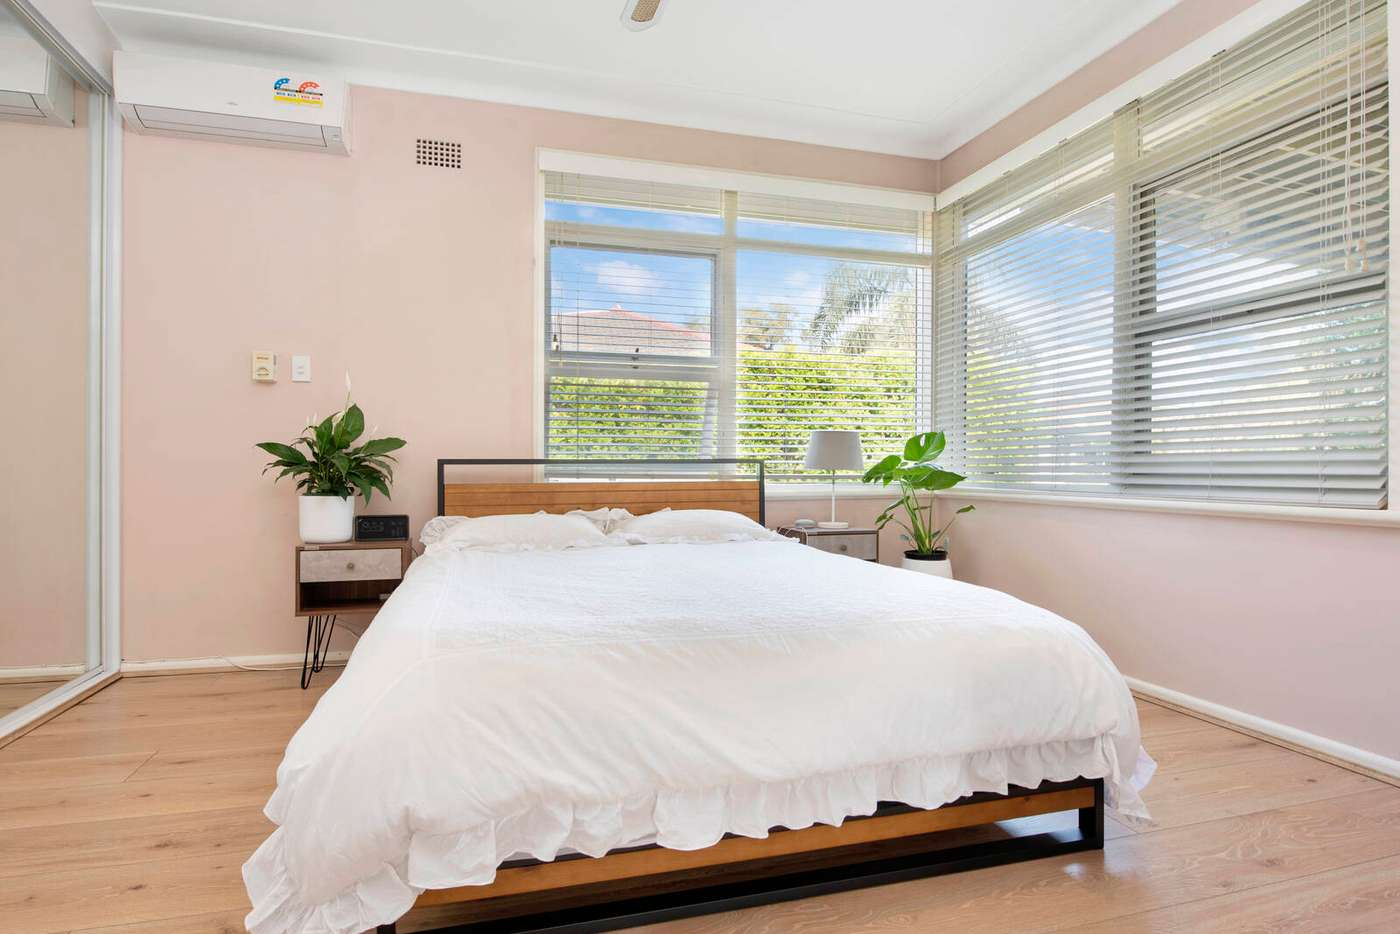 Sixth view of Homely house listing, 11 Attard Avenue, Marayong NSW 2148